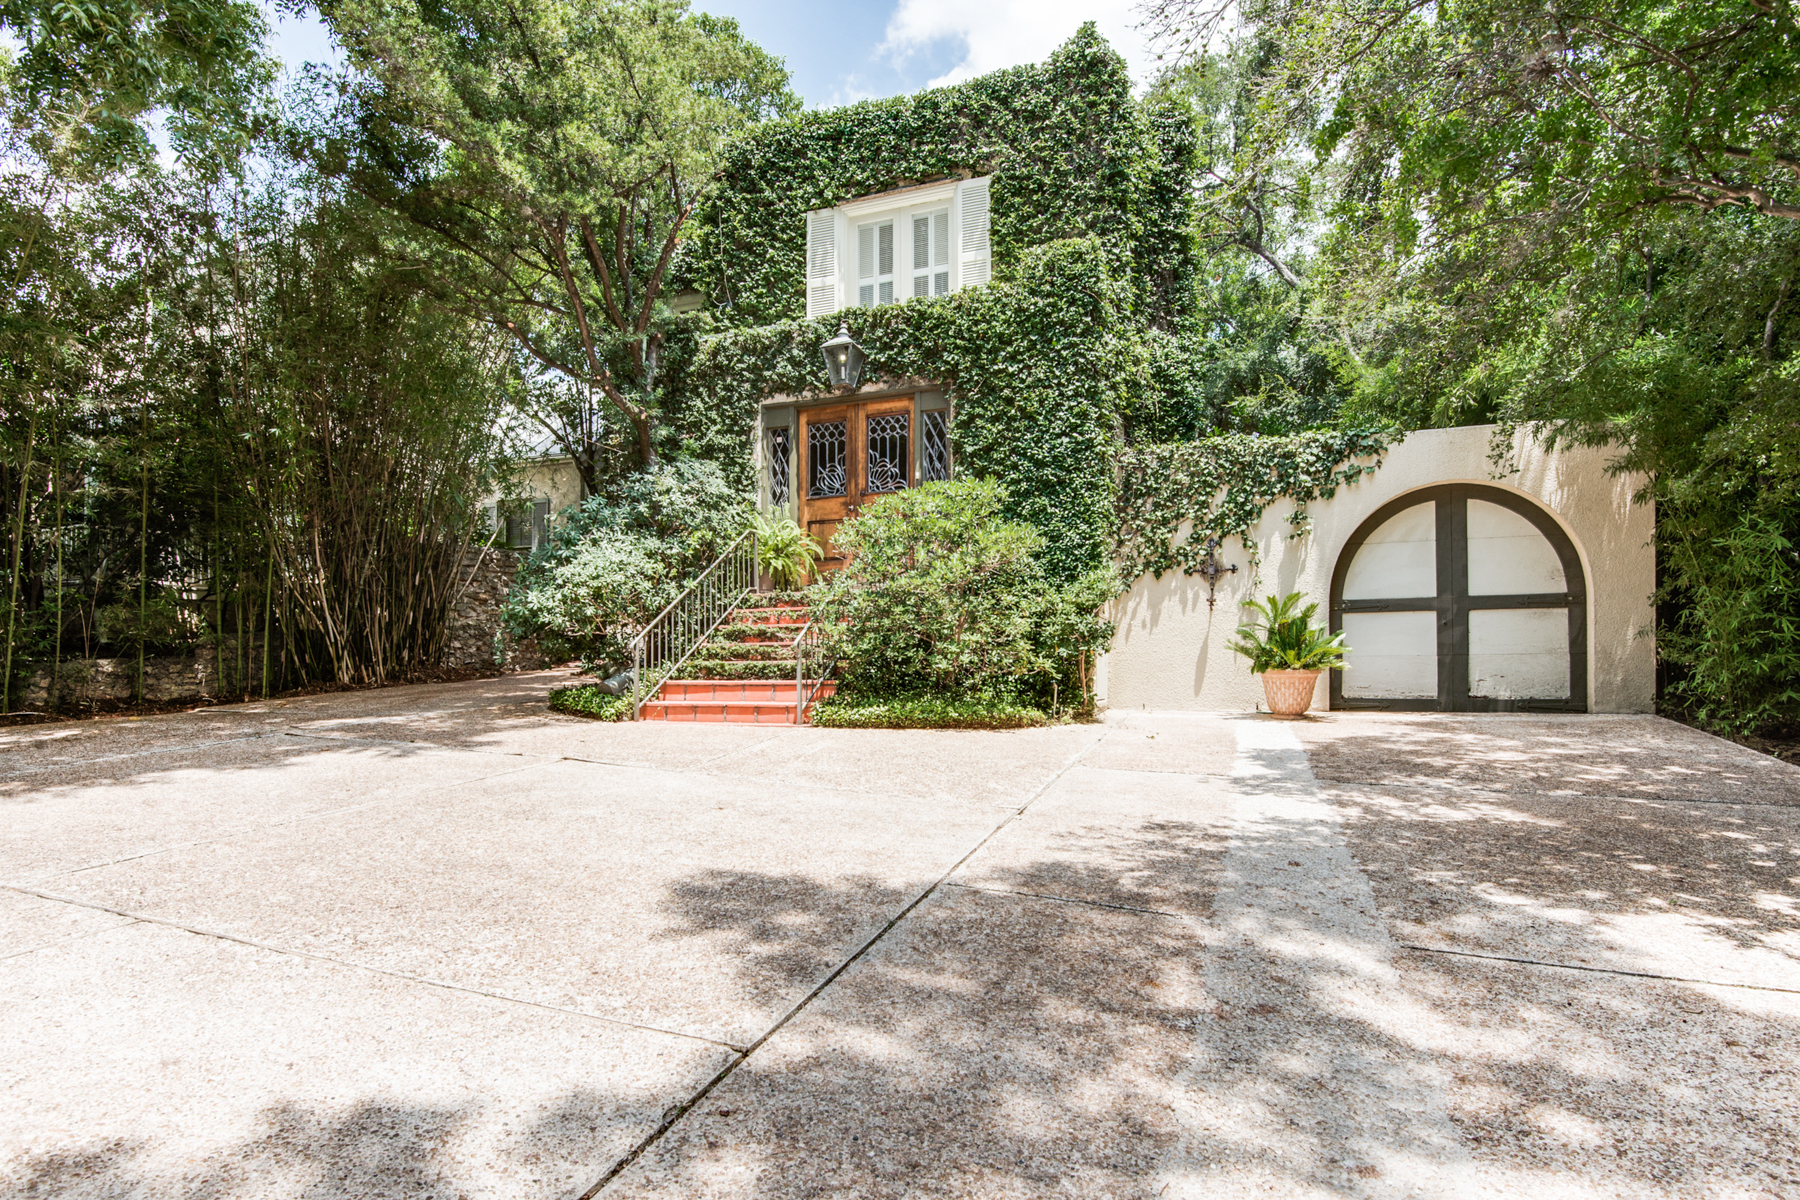 Property For Sale at Charming Ivy-Clad Home in Alamo Heights